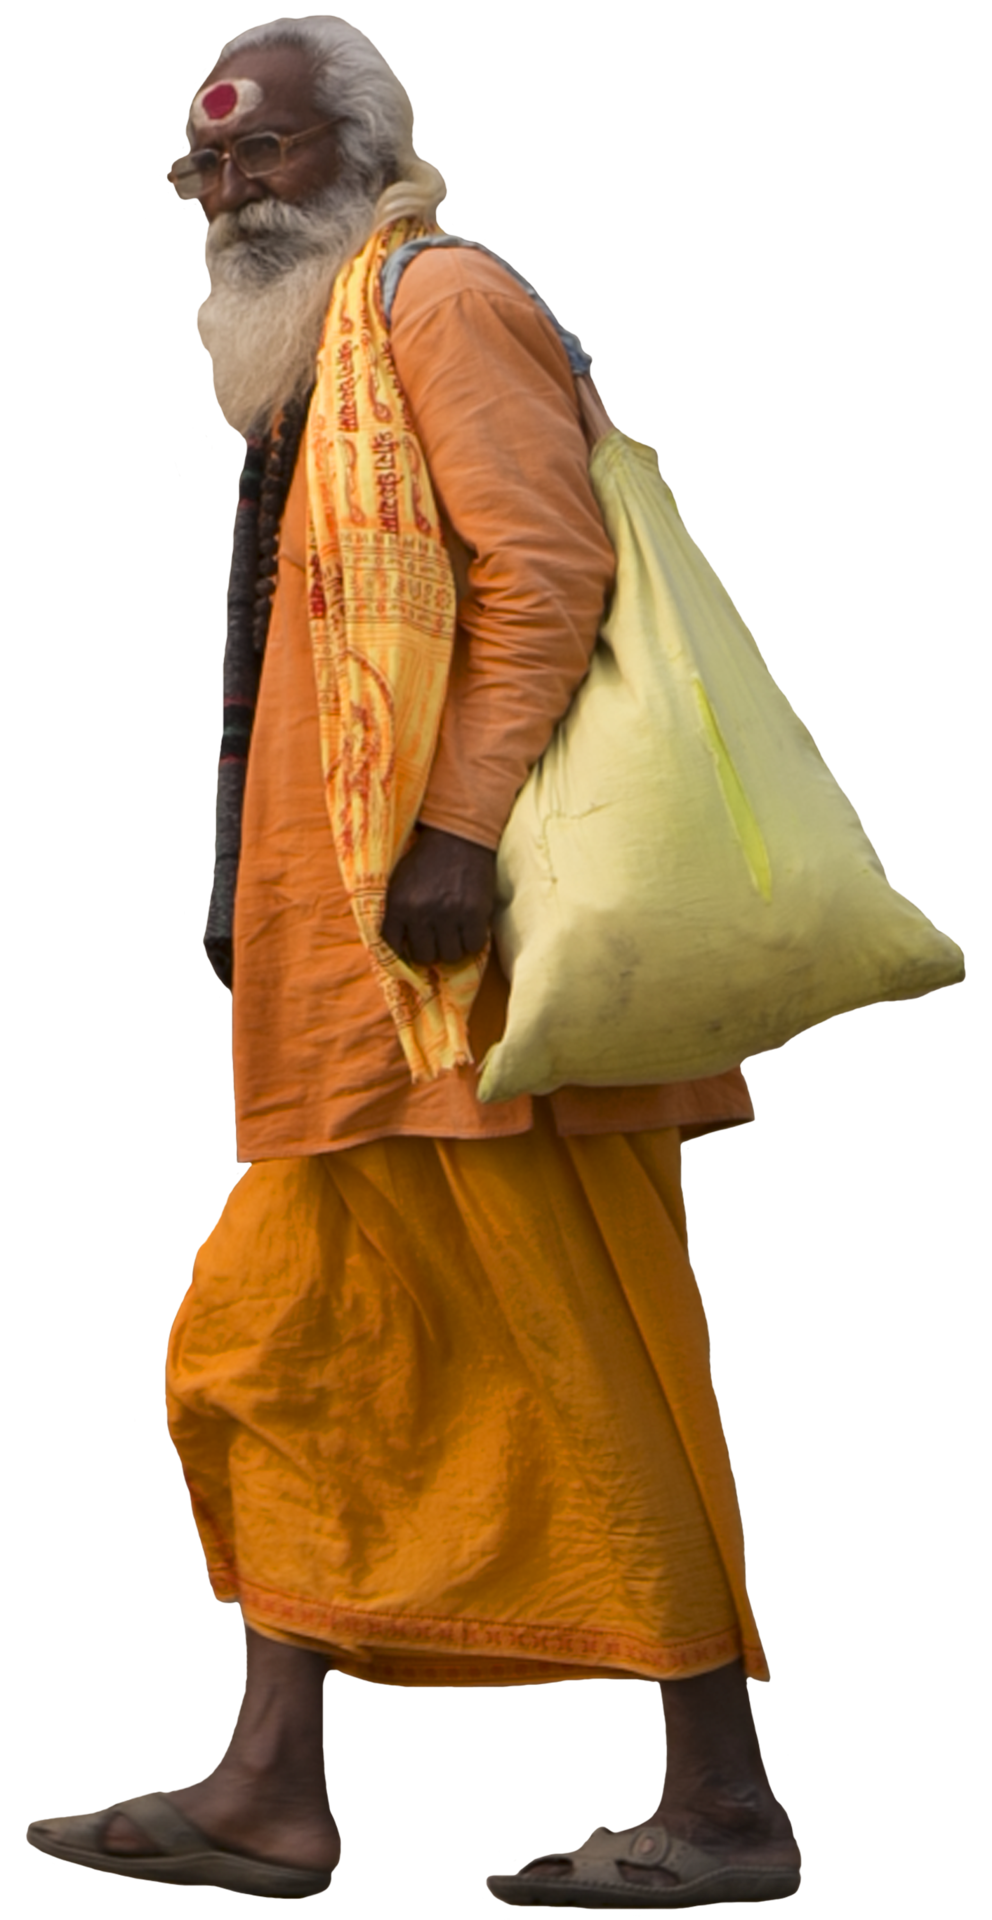 jugaad render, sadhu walking, man walking indian cutout.